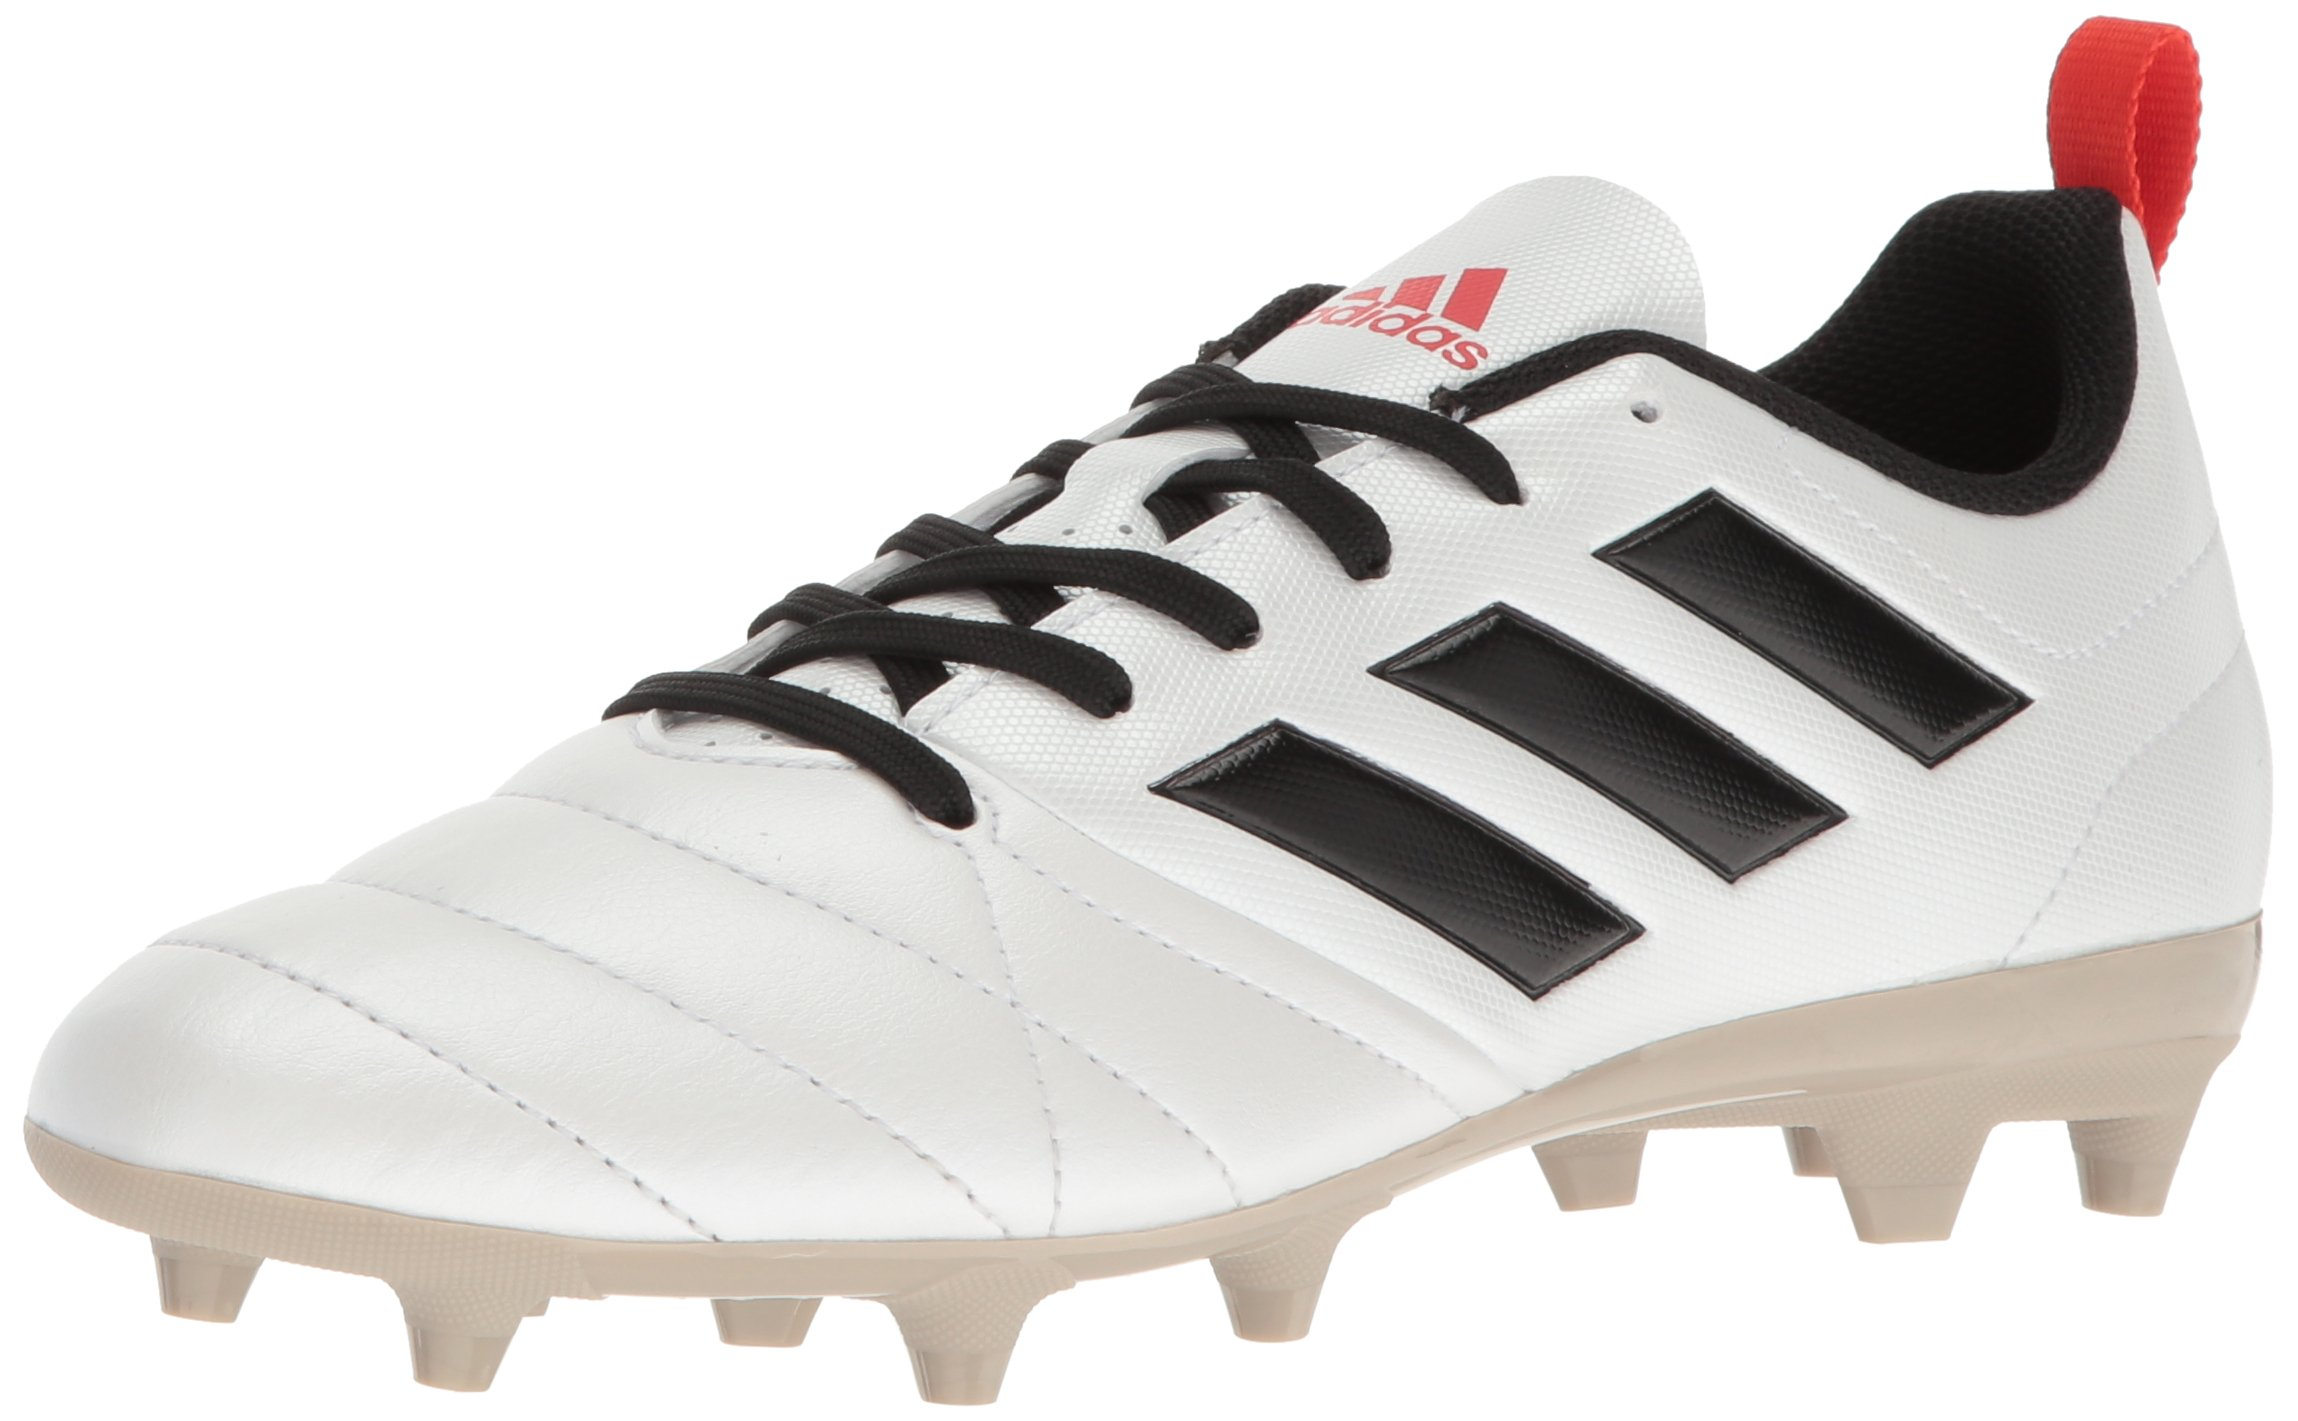 adidas Women's Ace 17.4 FG W Soccer Shoe, White/Black/Core Red S, 7.5 M US